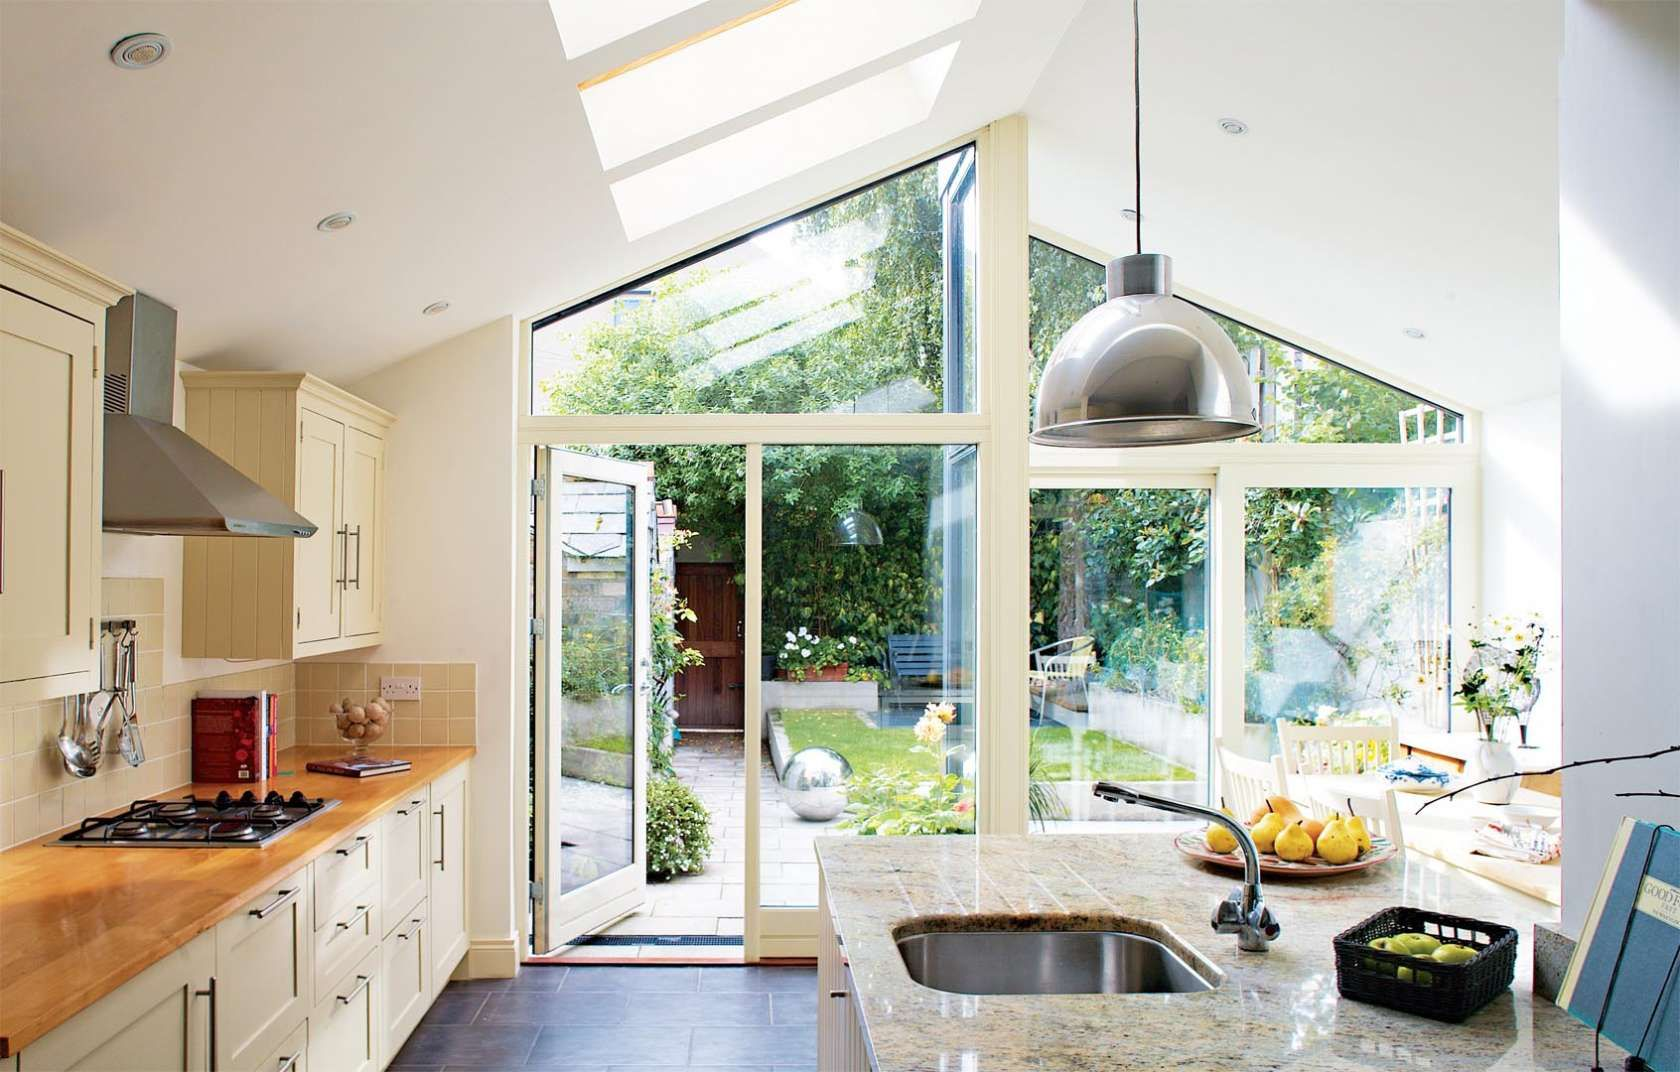 Terraced house kitchen extension google search kitchen for House extension interior designs